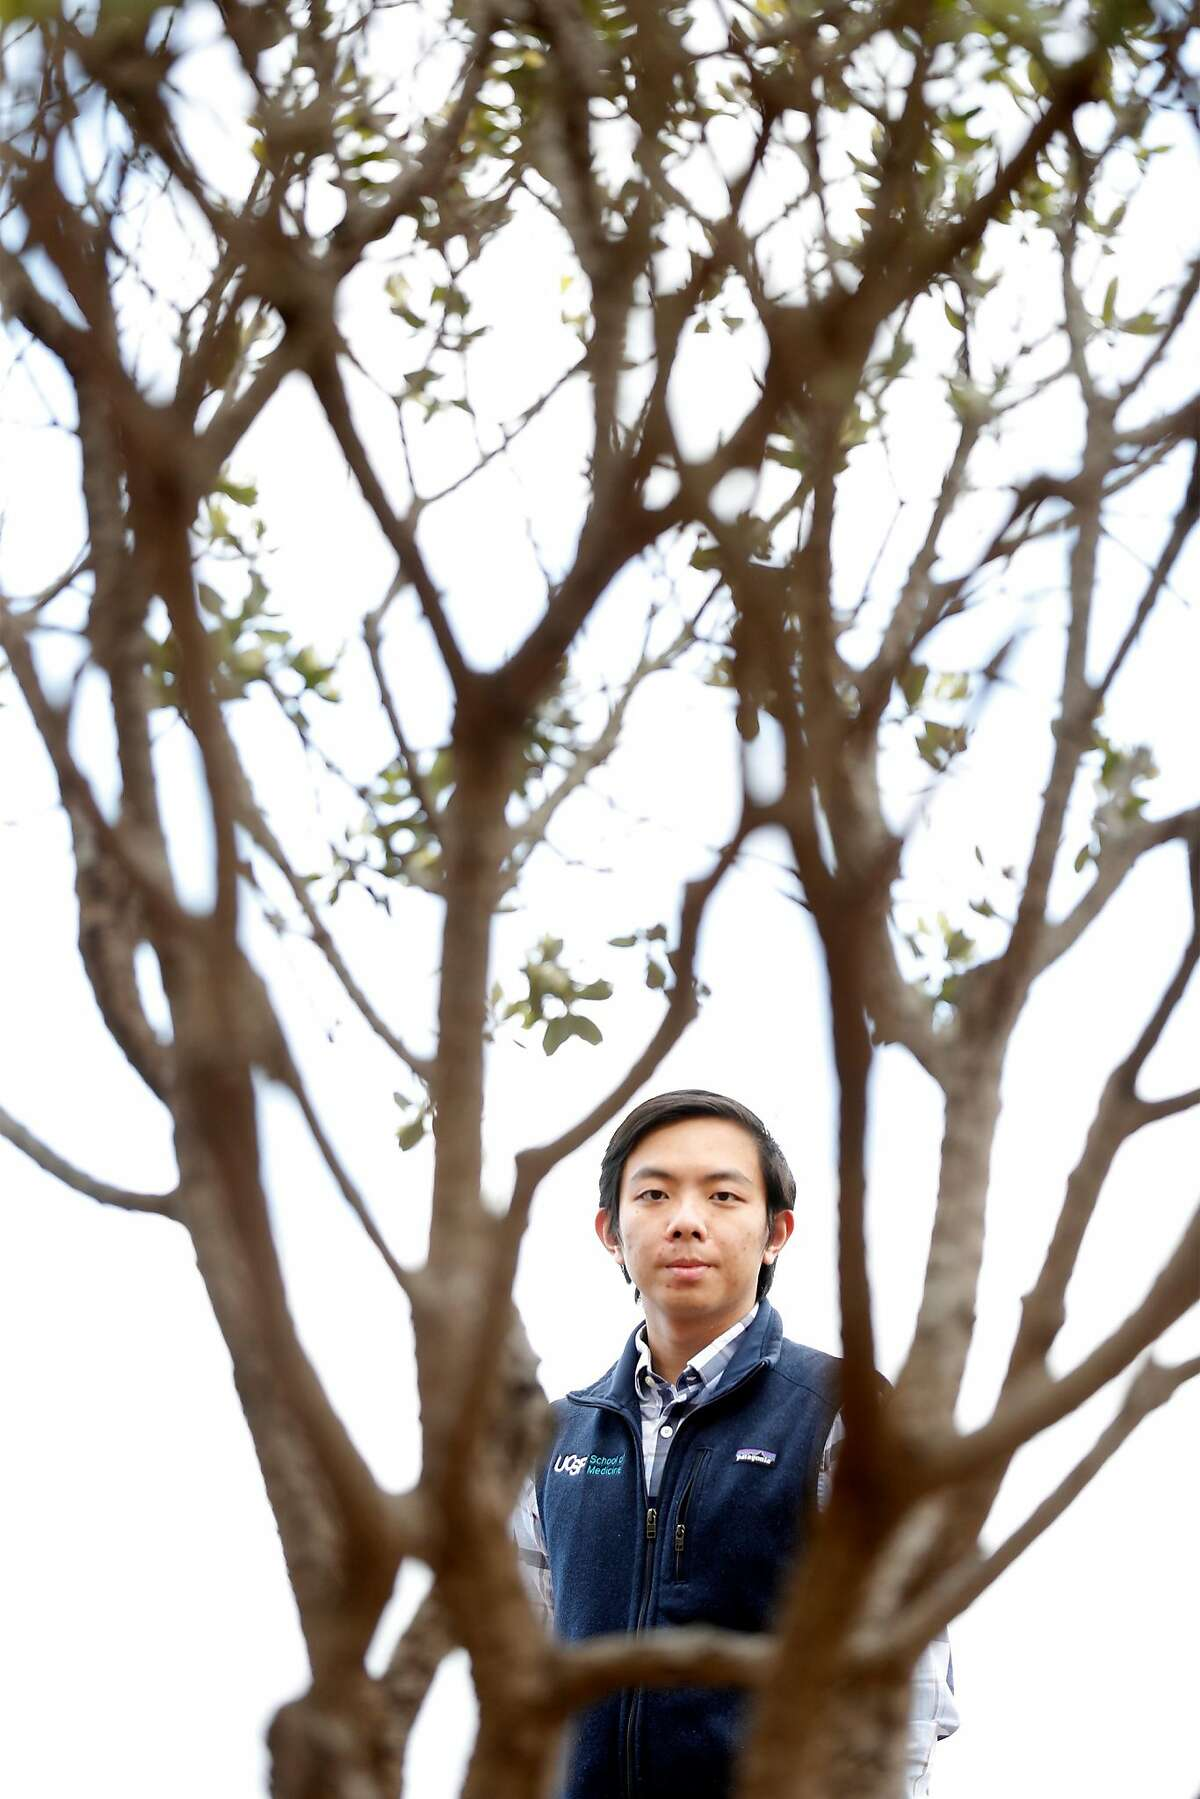 Medical student Brandon Yan at UCSF Parnassus campus in San Francisco, Calif., on Monday, May 18, 2020. Yan is the lead author of a paper detailing that, despite testing positive for the coronavirus at low rates, Asian Americans are more likely to die than any other race or ethnicity.